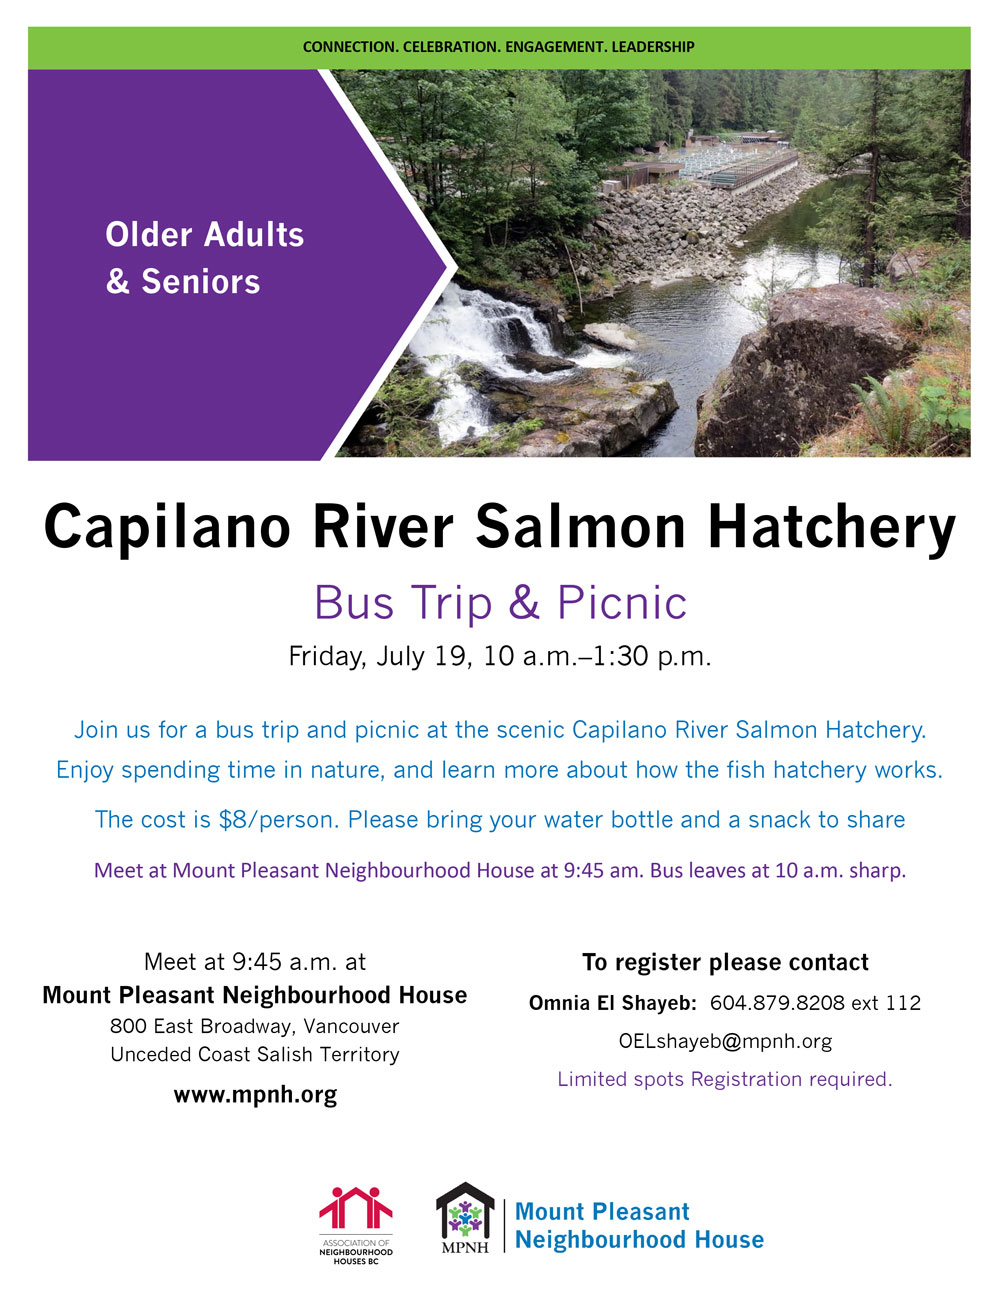 An image of the poster with event details, featuring a photo of trees, rocks and a waterfall into the river, with the hatchery in the background